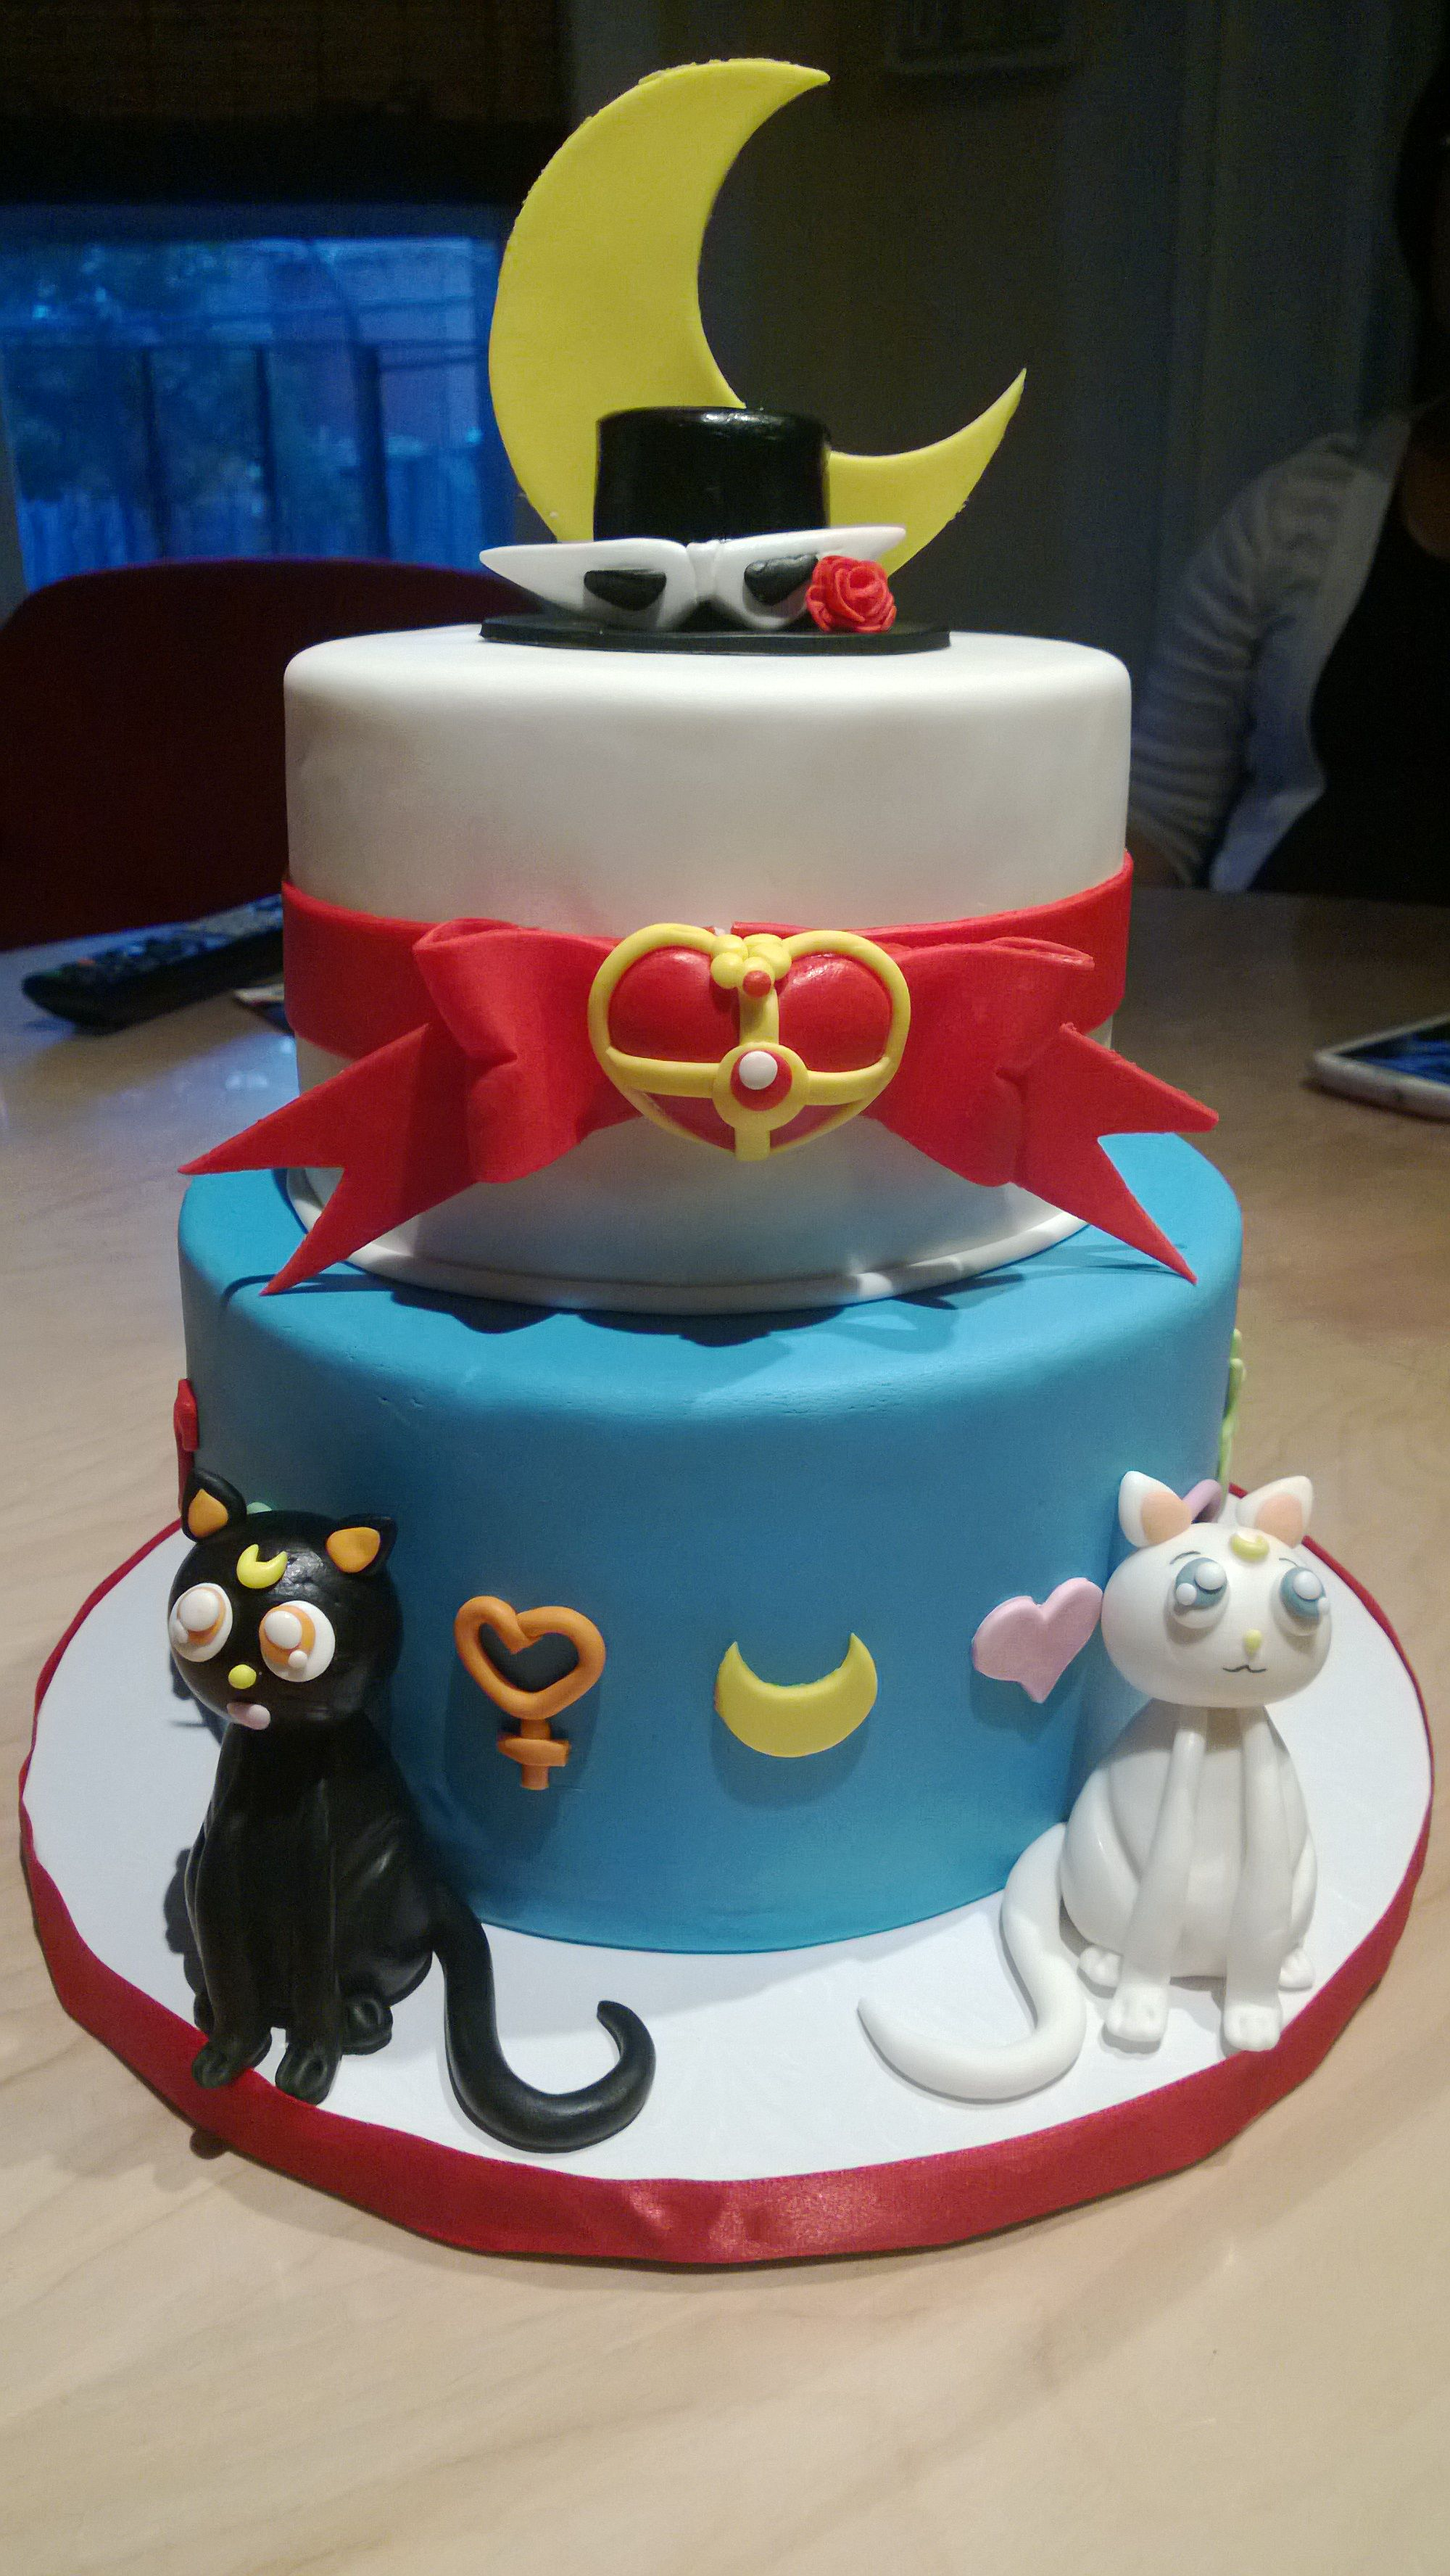 Incredible My Amazing Sailor Moon Birthday Cake 3 With Images Sailor Personalised Birthday Cards Beptaeletsinfo